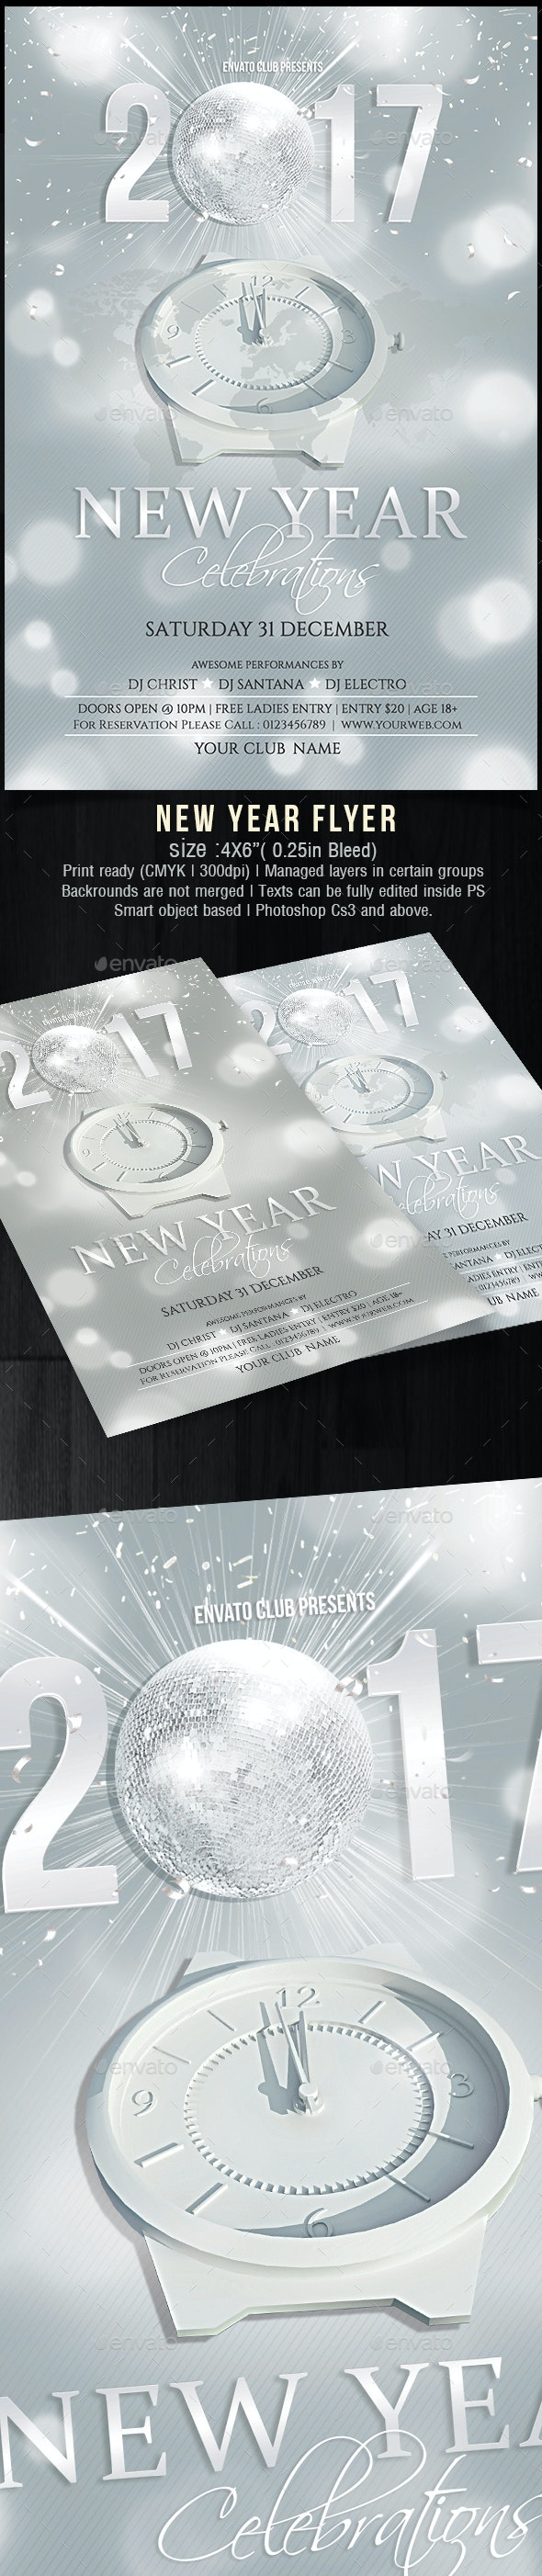 New Year Flyer - Holidays Events